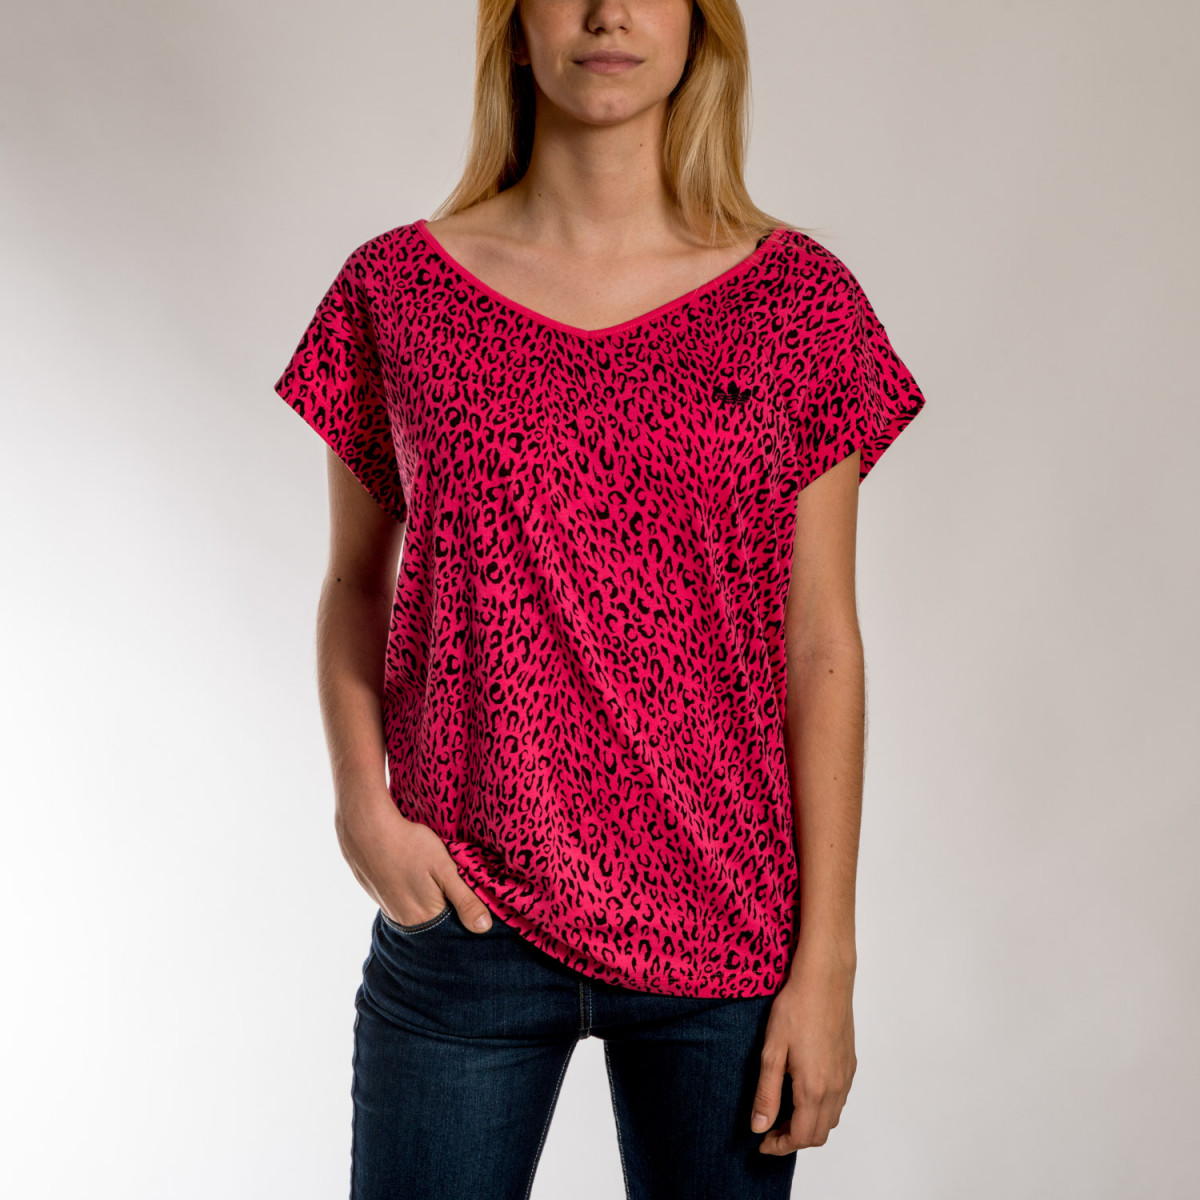 REMERA ADIDAS OR LEOPARD TEE